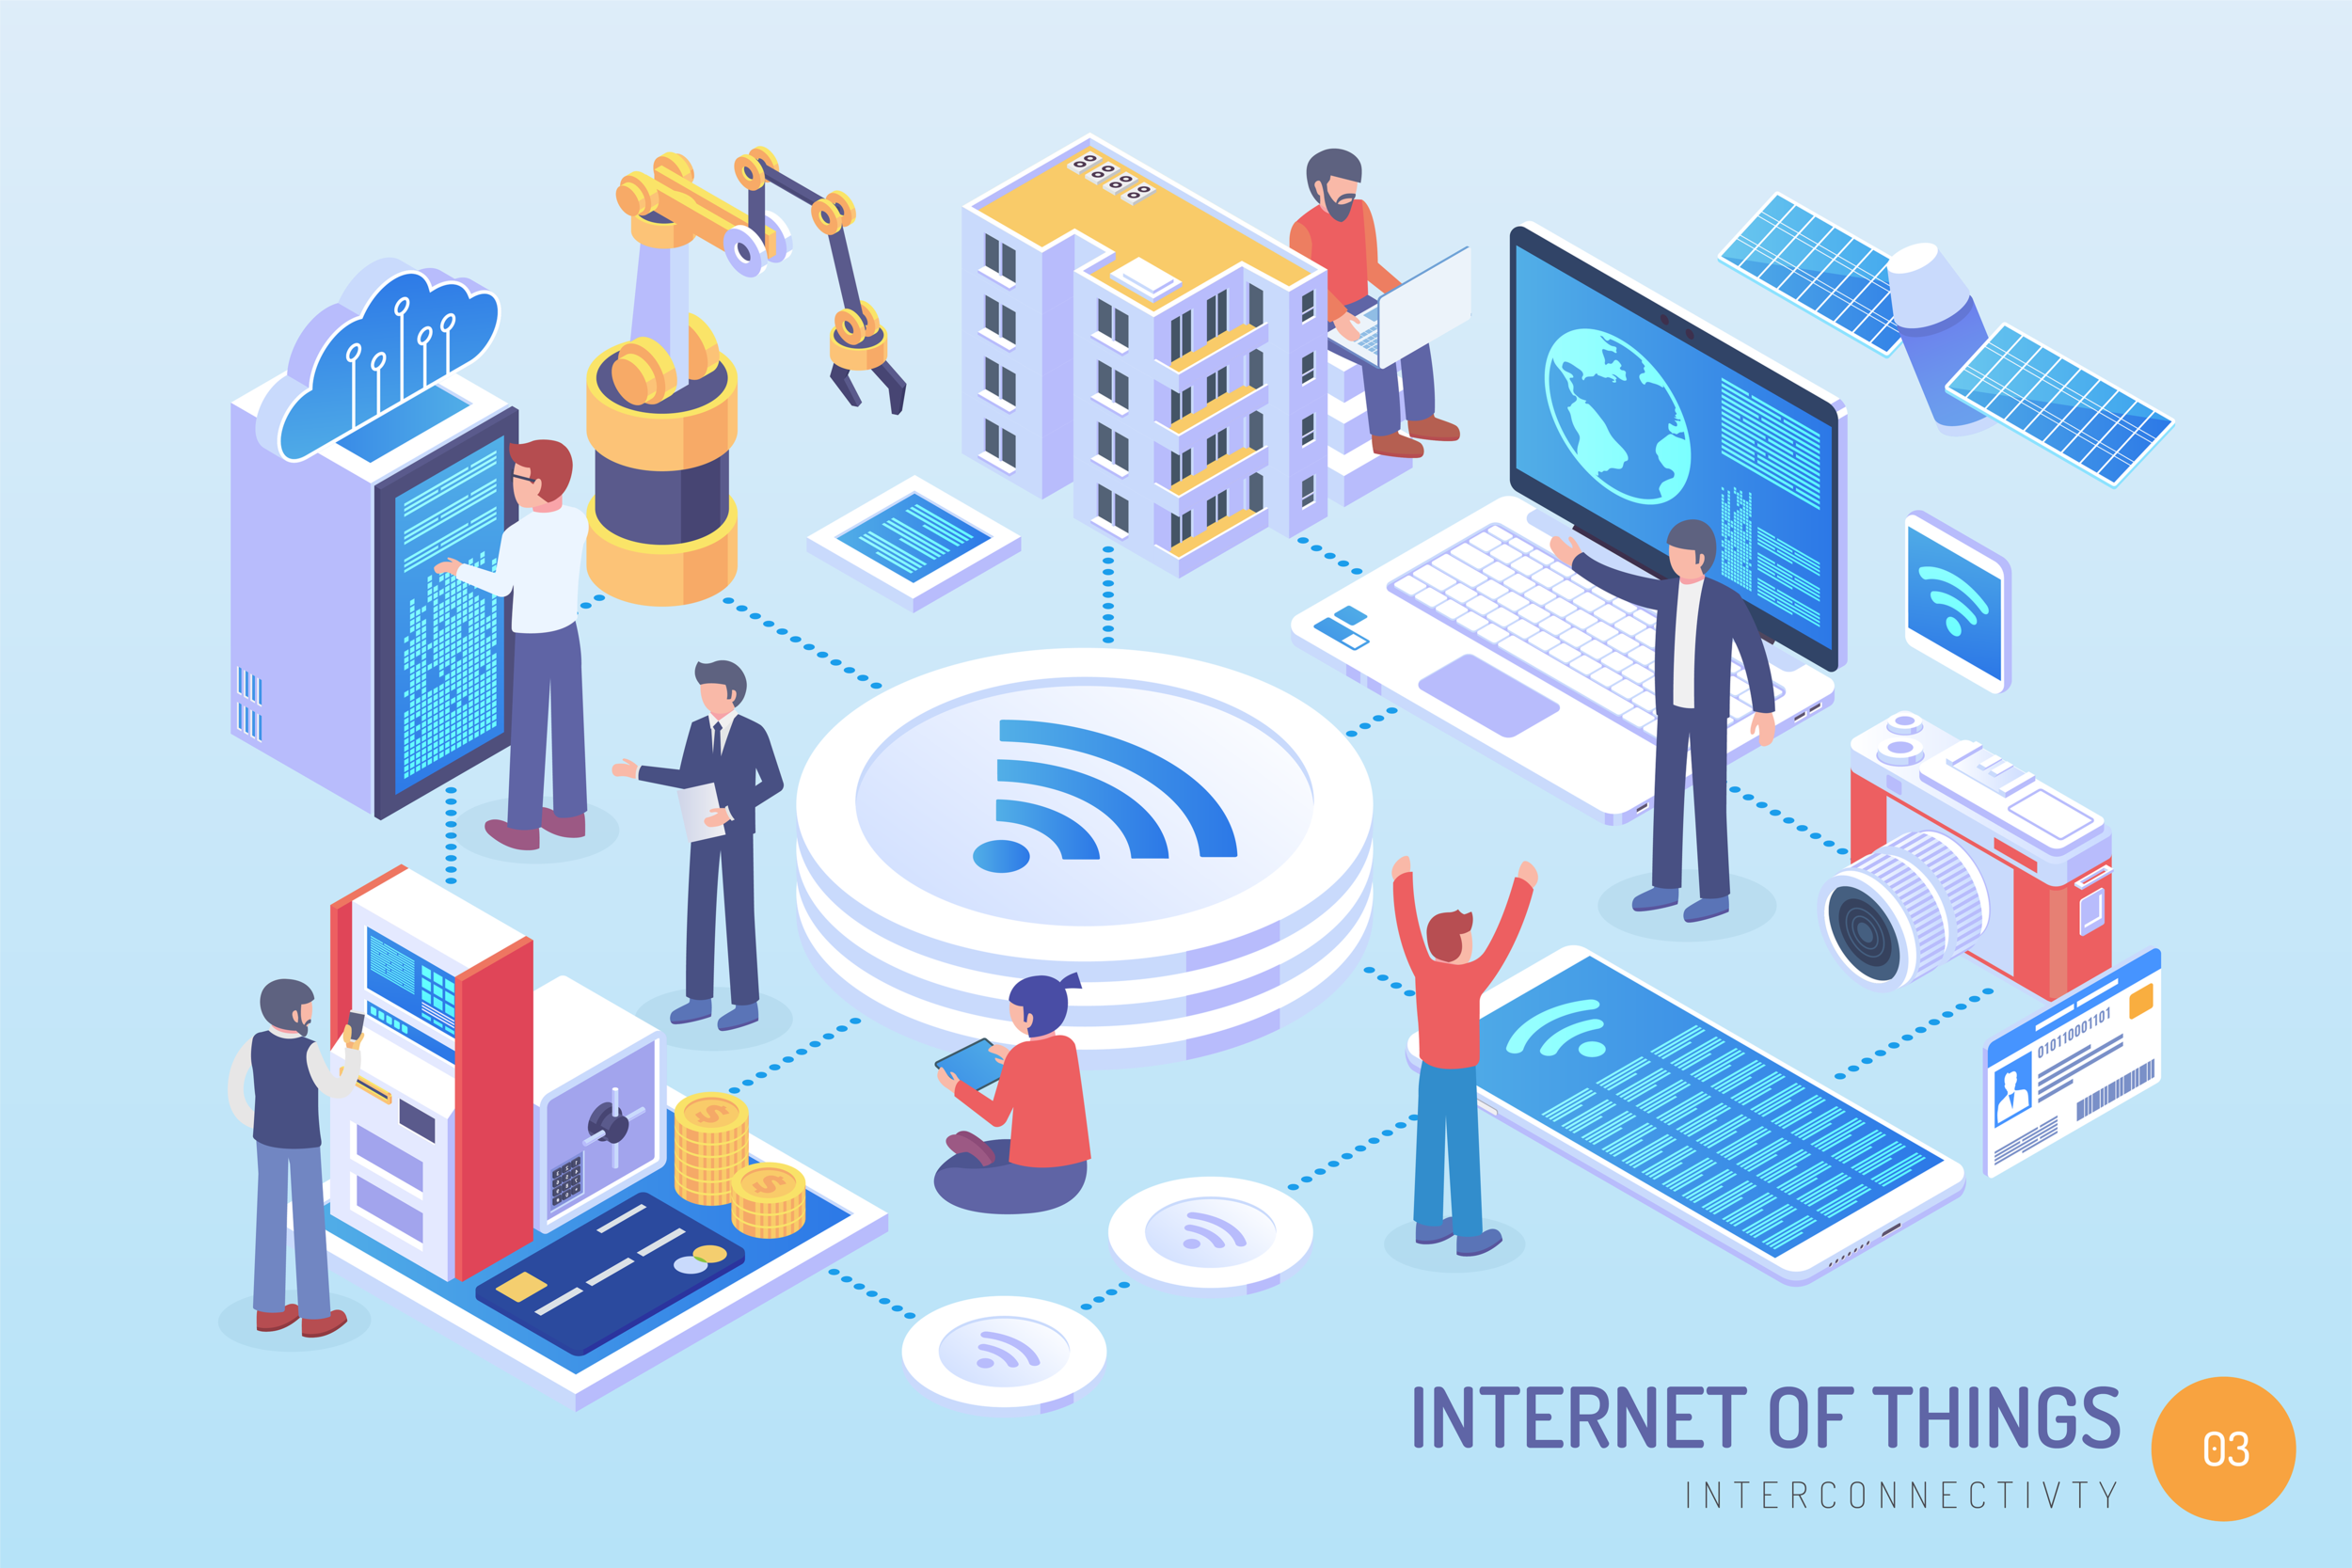 Internet of things involves the interconnectivity of objects and physical devices via the internet.